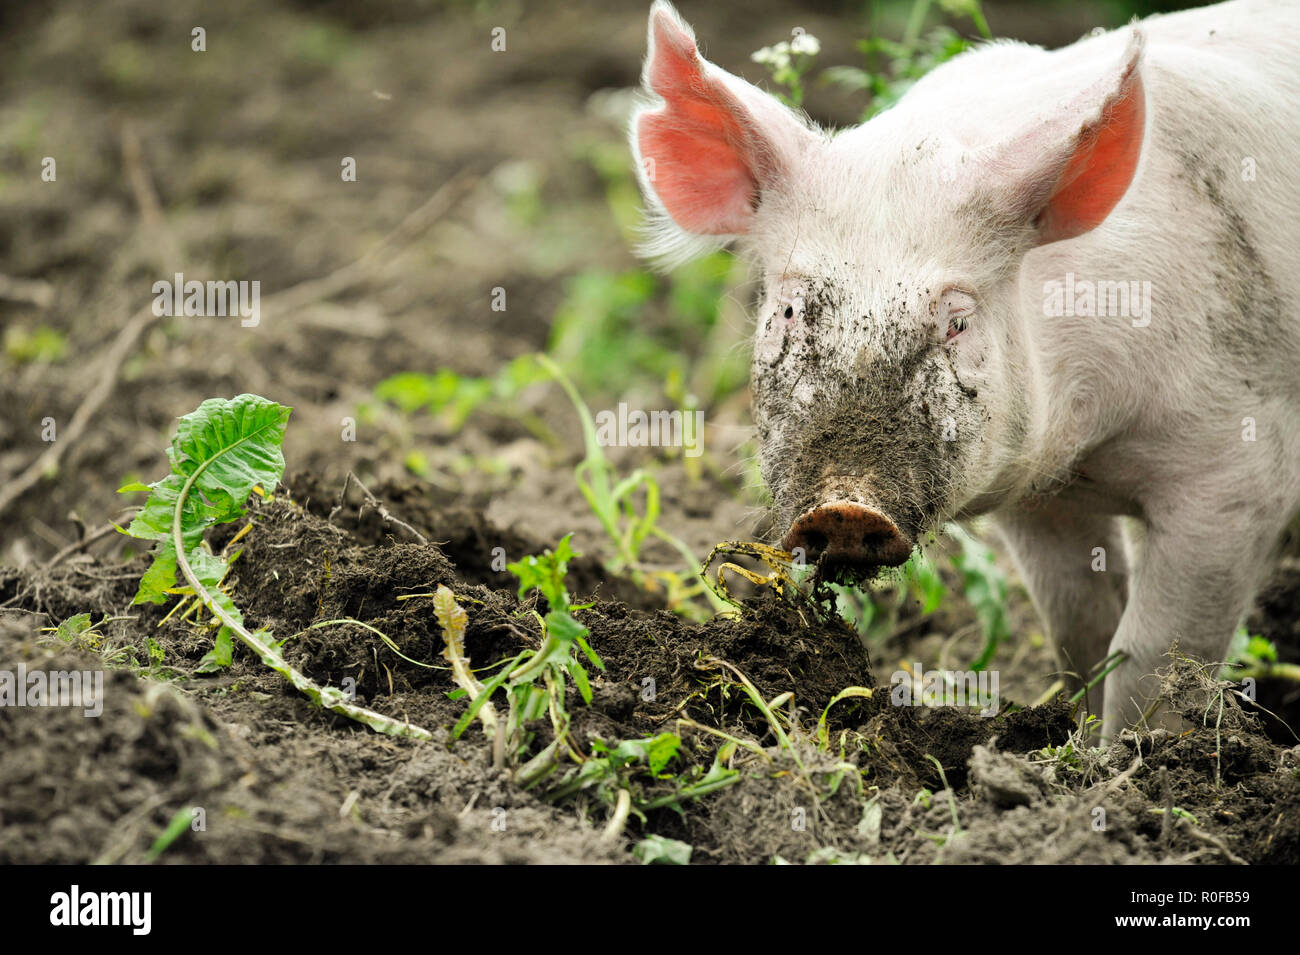 Young pig digging soil to eat grass roots Stock Photo